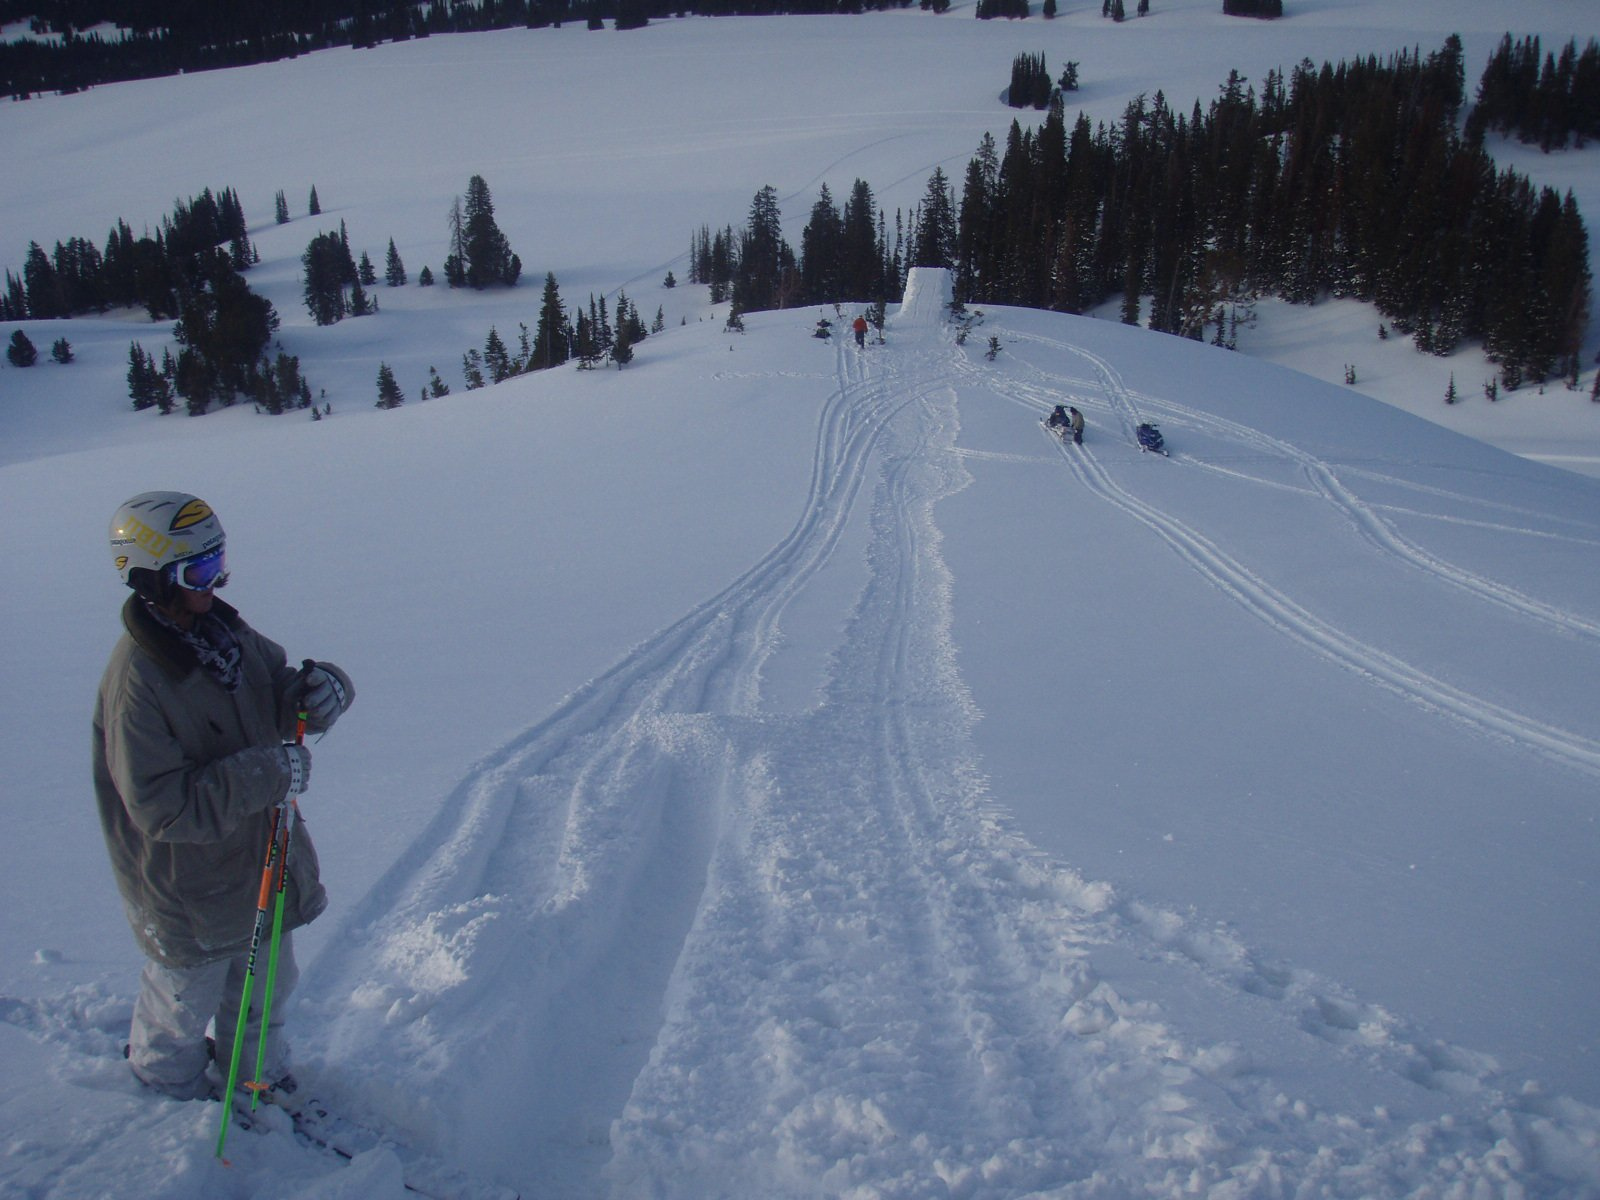 About to drop in for the hunting yeti jump in cooke city